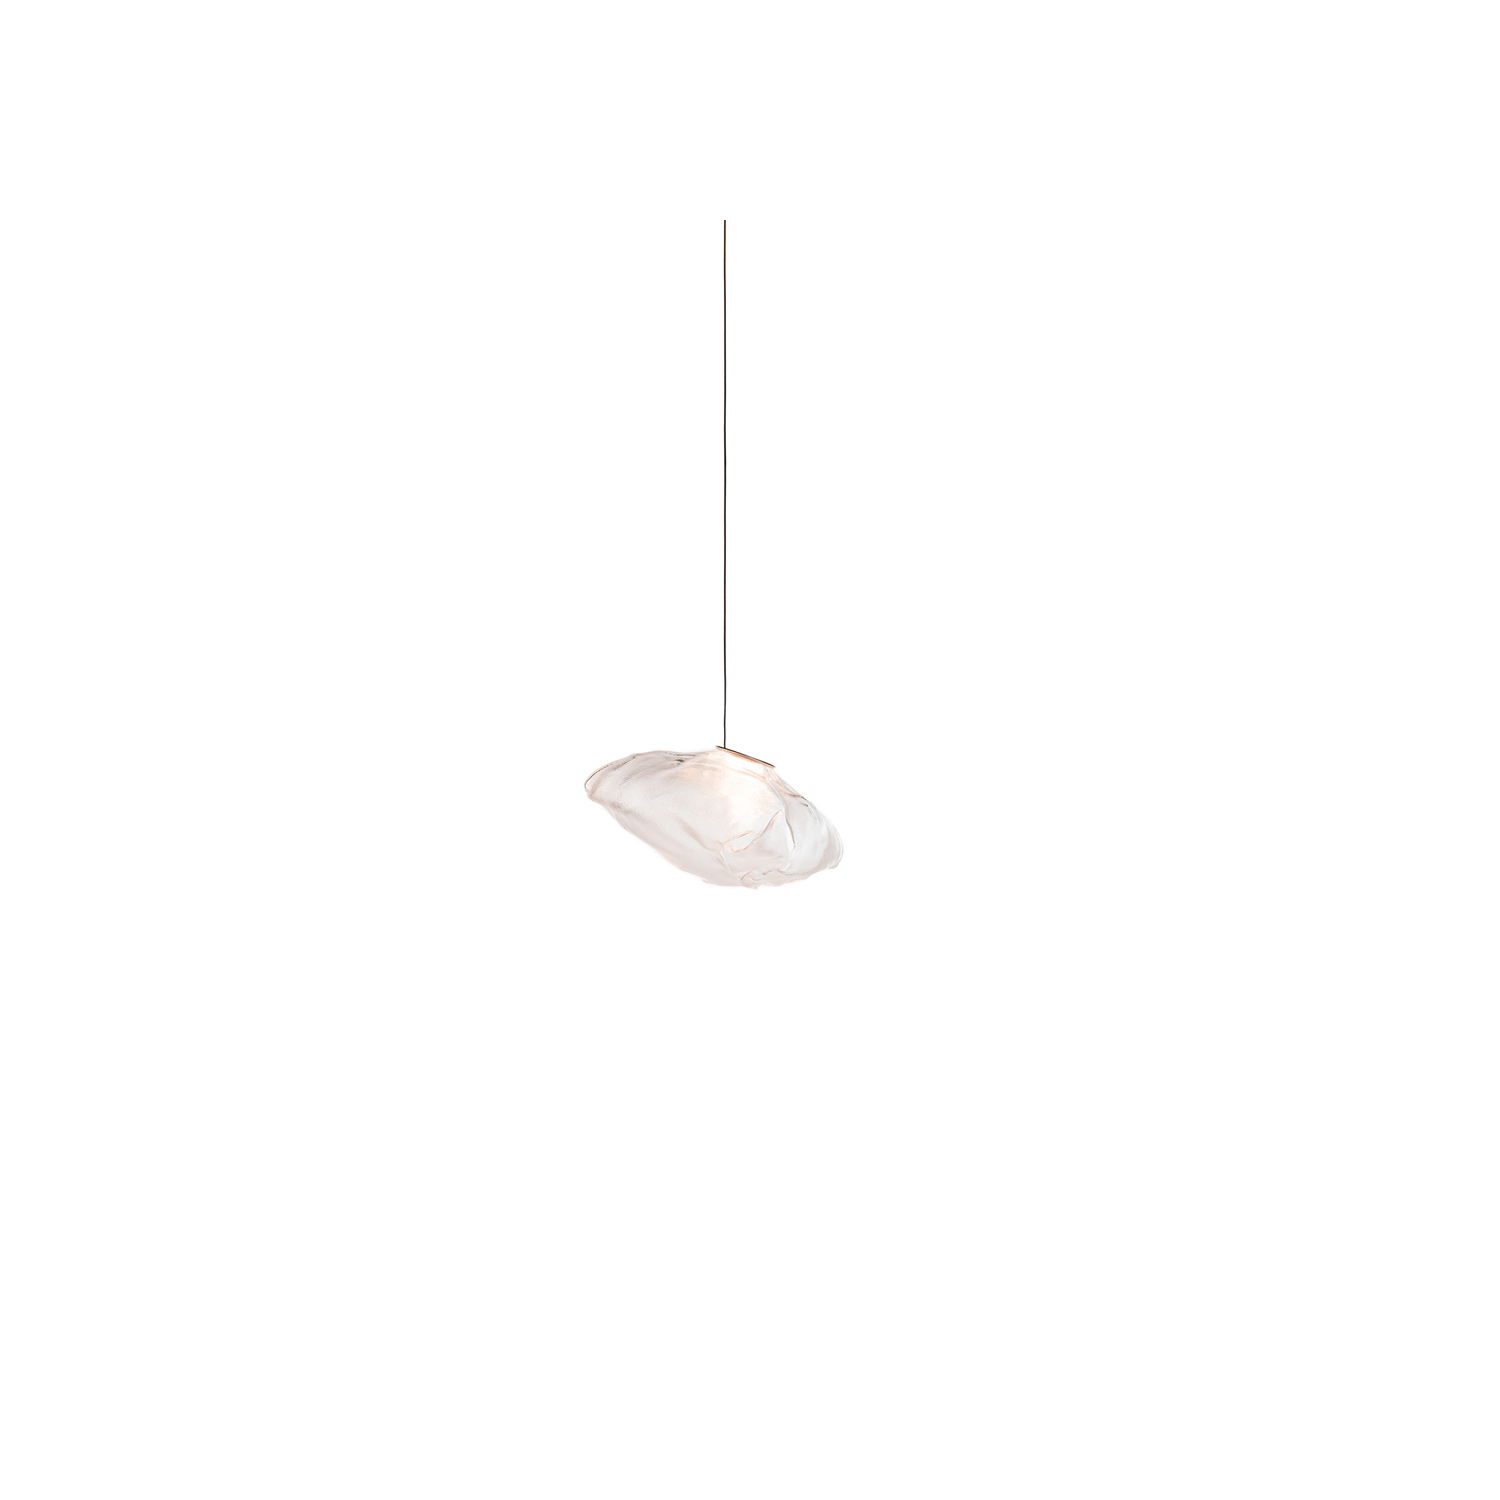 """73.1 Pendant Light - The 73.1 shallow canopy is a single 73 pendant fixture with a shallow brushed nickel canopy designed to fit over a new or existing 4"""" octagonal junction box. The canopy is 116mm (4.5"""") in diameter and 7mm (0.3"""") deep, which creates a subtle profile that minimises the impact in the application surface. The pendant drop lengths on this chandelier are adjustable up to the specified maximum. The 73 is formed by blowing liquid glass into a folded and highly heat-resistant ceramic fabric vessel. The resulting shape has a formal and textural expression intuitively associated with fabric, which becomes permanent and rigid as it cools. Each 73 is completely unique in proportion, size and shape.  